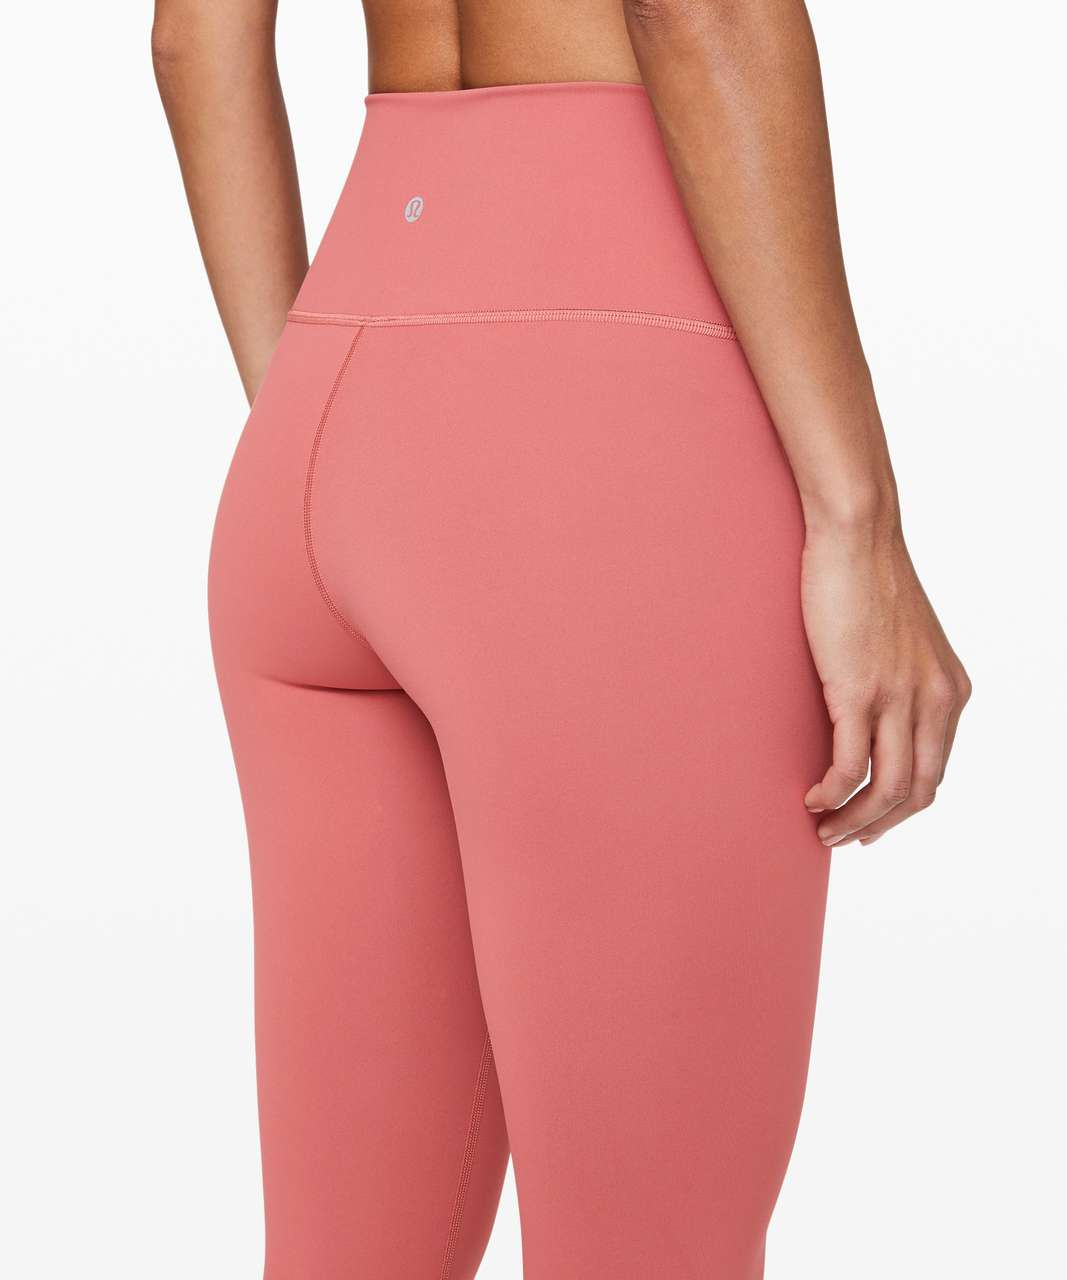 "Lululemon Wunder Under High-Rise Tight 25"" *Full-On Luxtreme - Rustic Coral (First Release)"